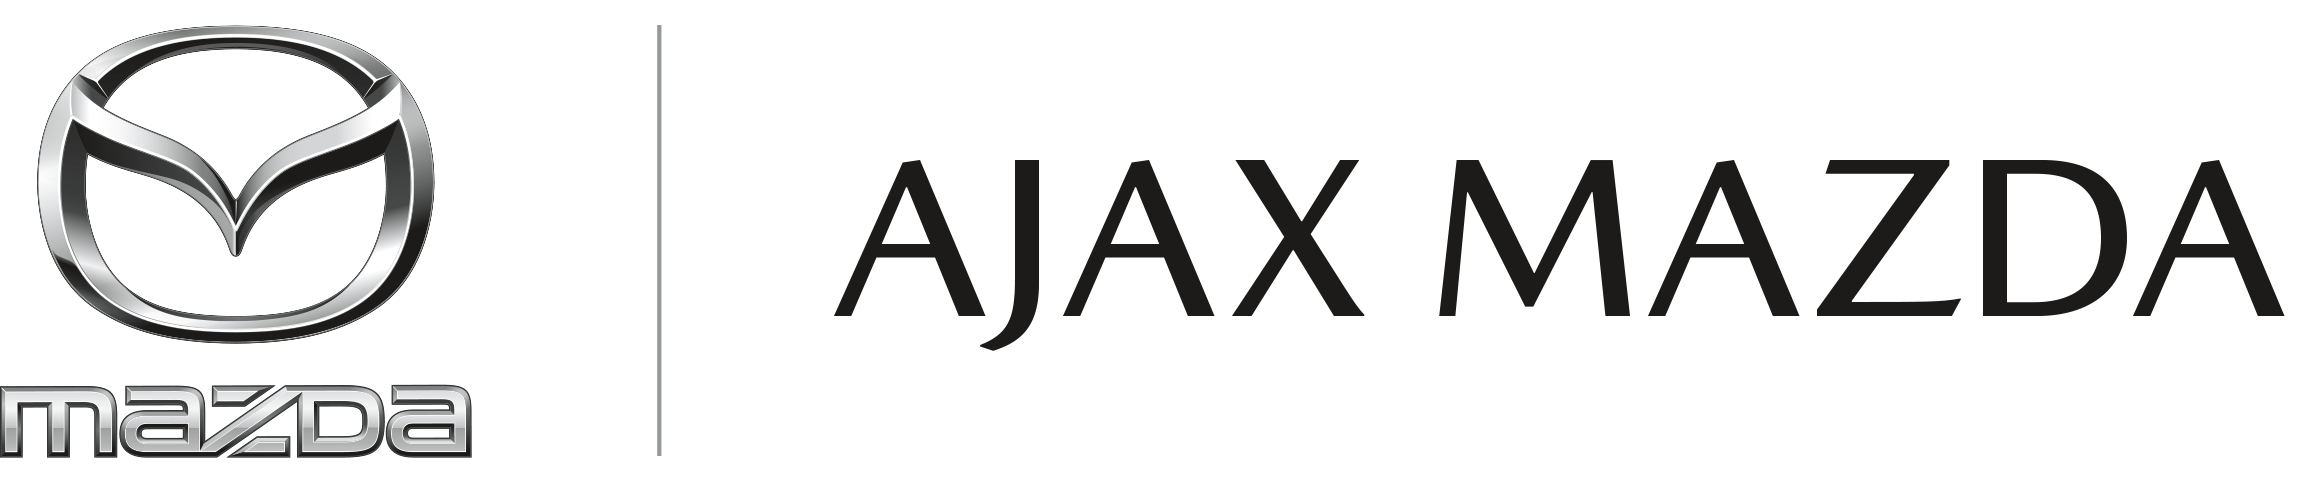 Hole in One - Ajax Mazda - Logo